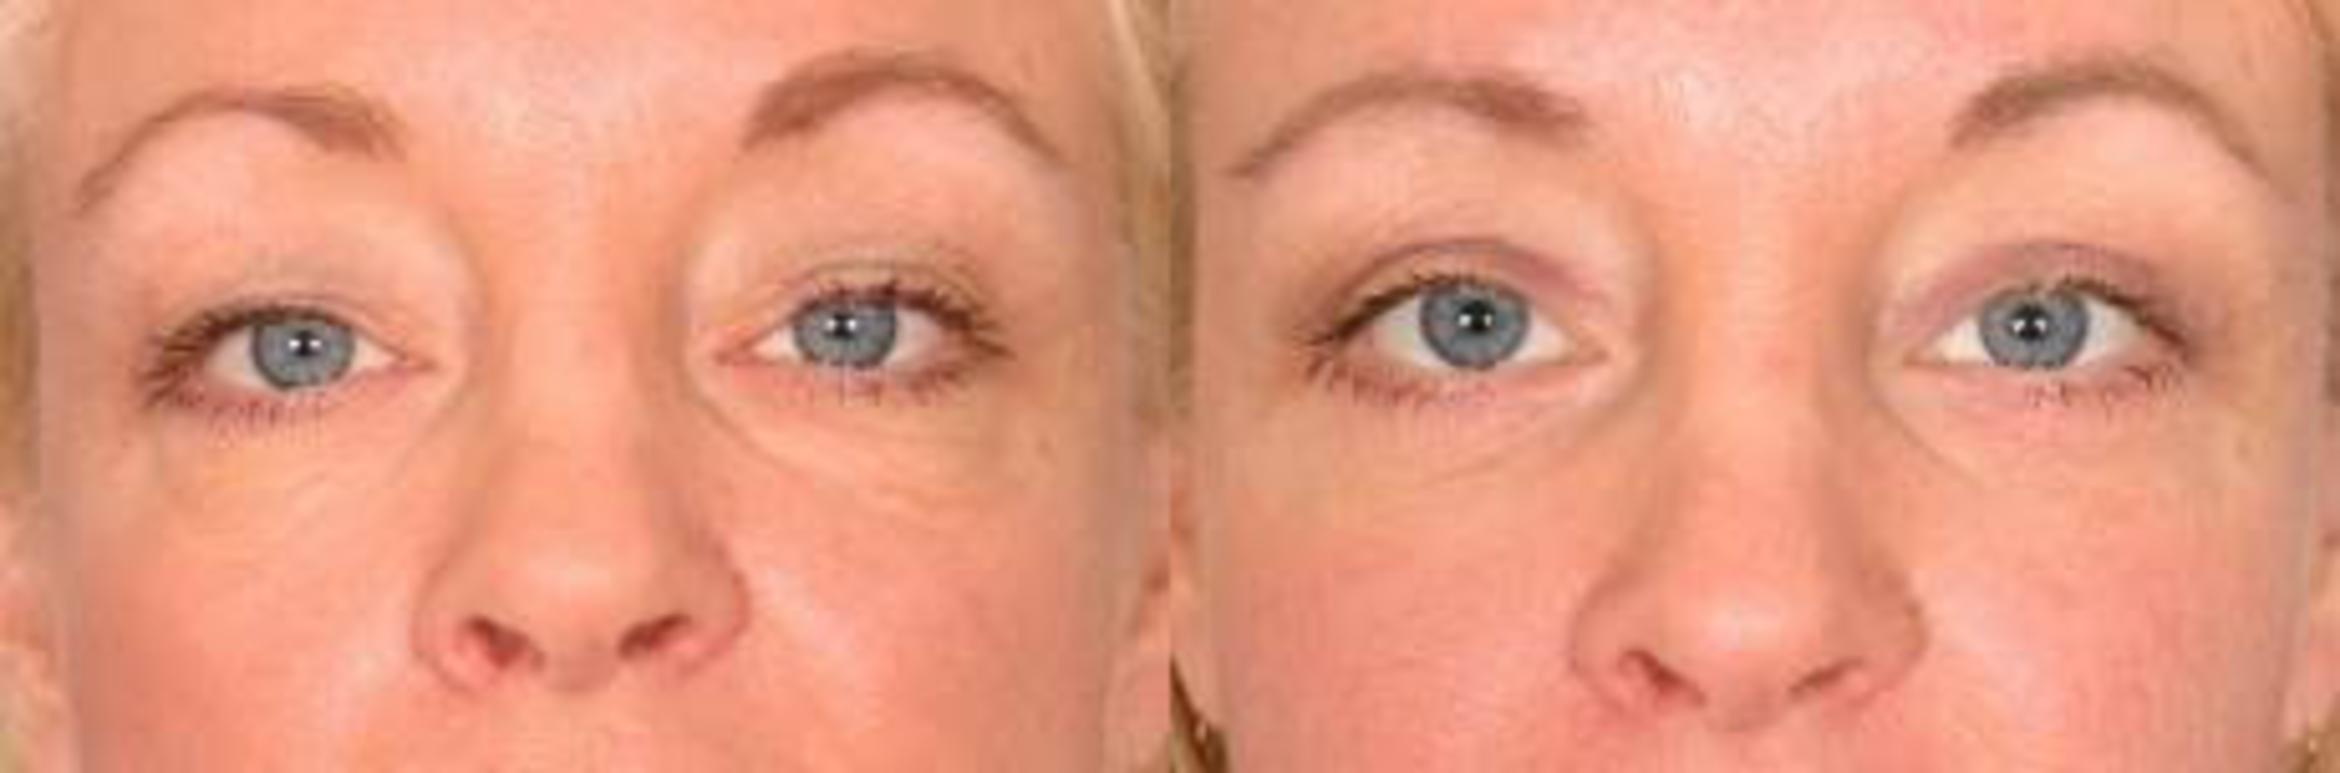 Eyelid Lift (Blepharoplasty) Before & After Photos Patient ...